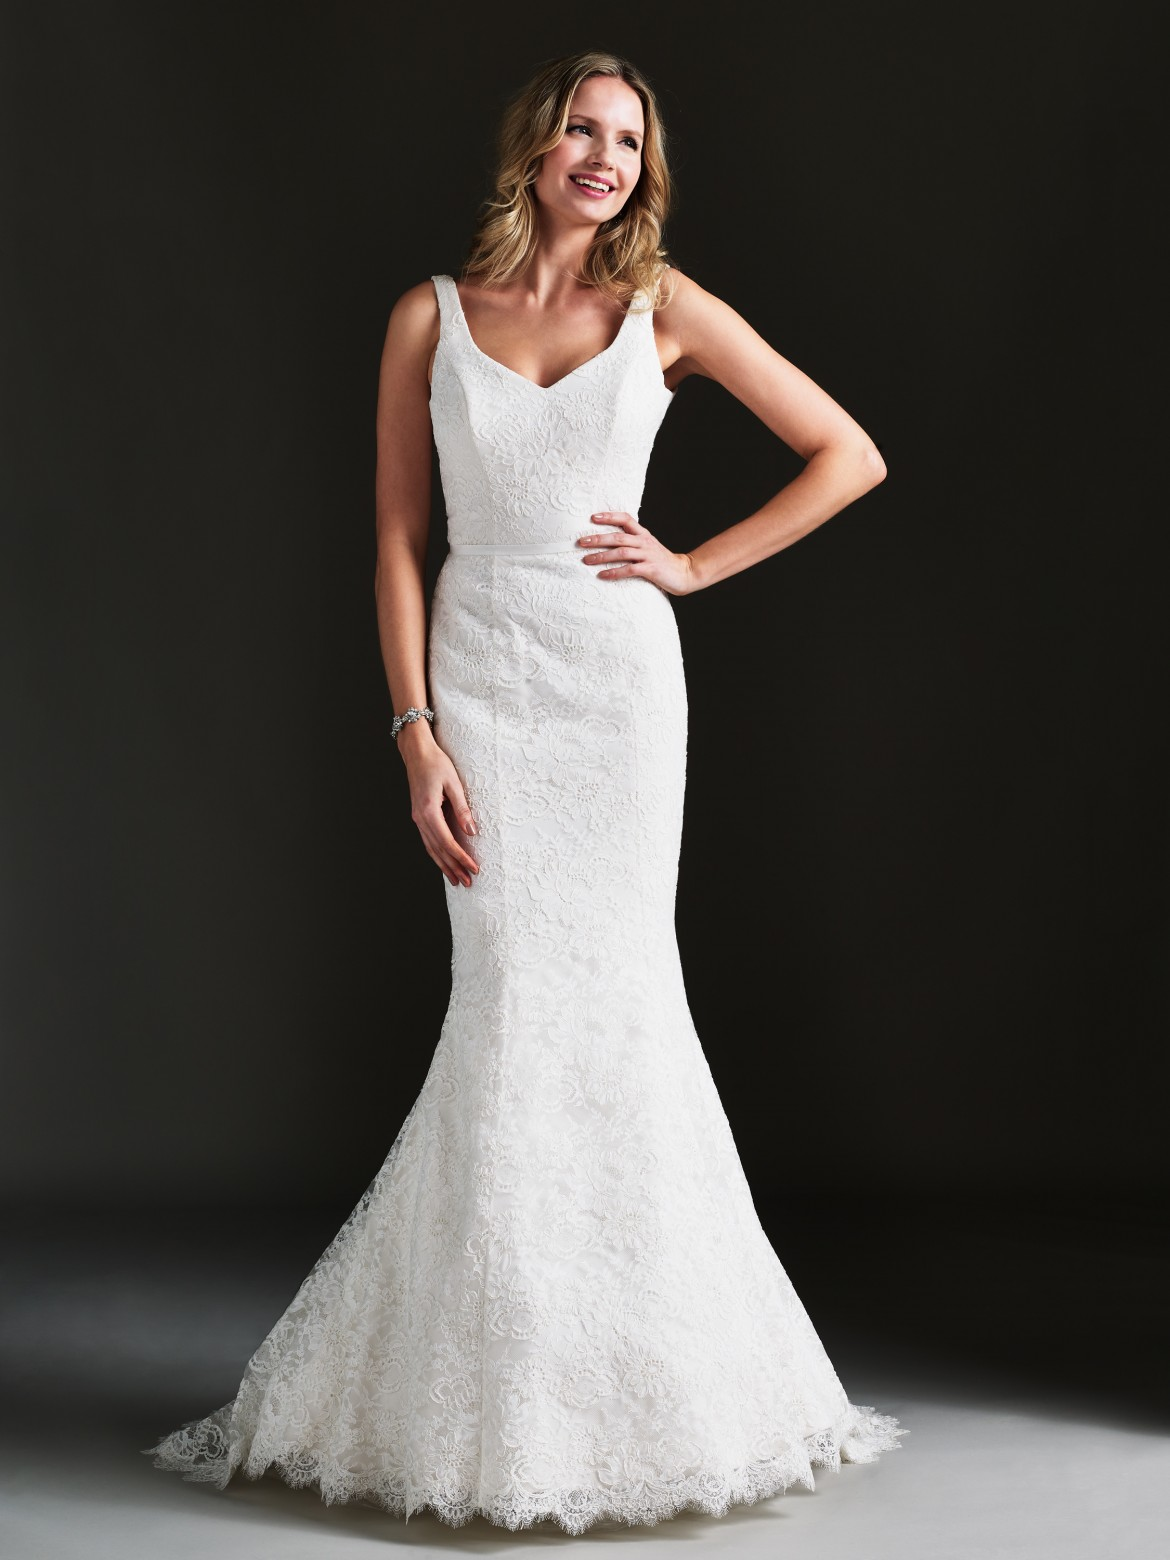 Wedding dresses shops london wedding dresses in jax wedding dresses shops london 44 ombrellifo Image collections